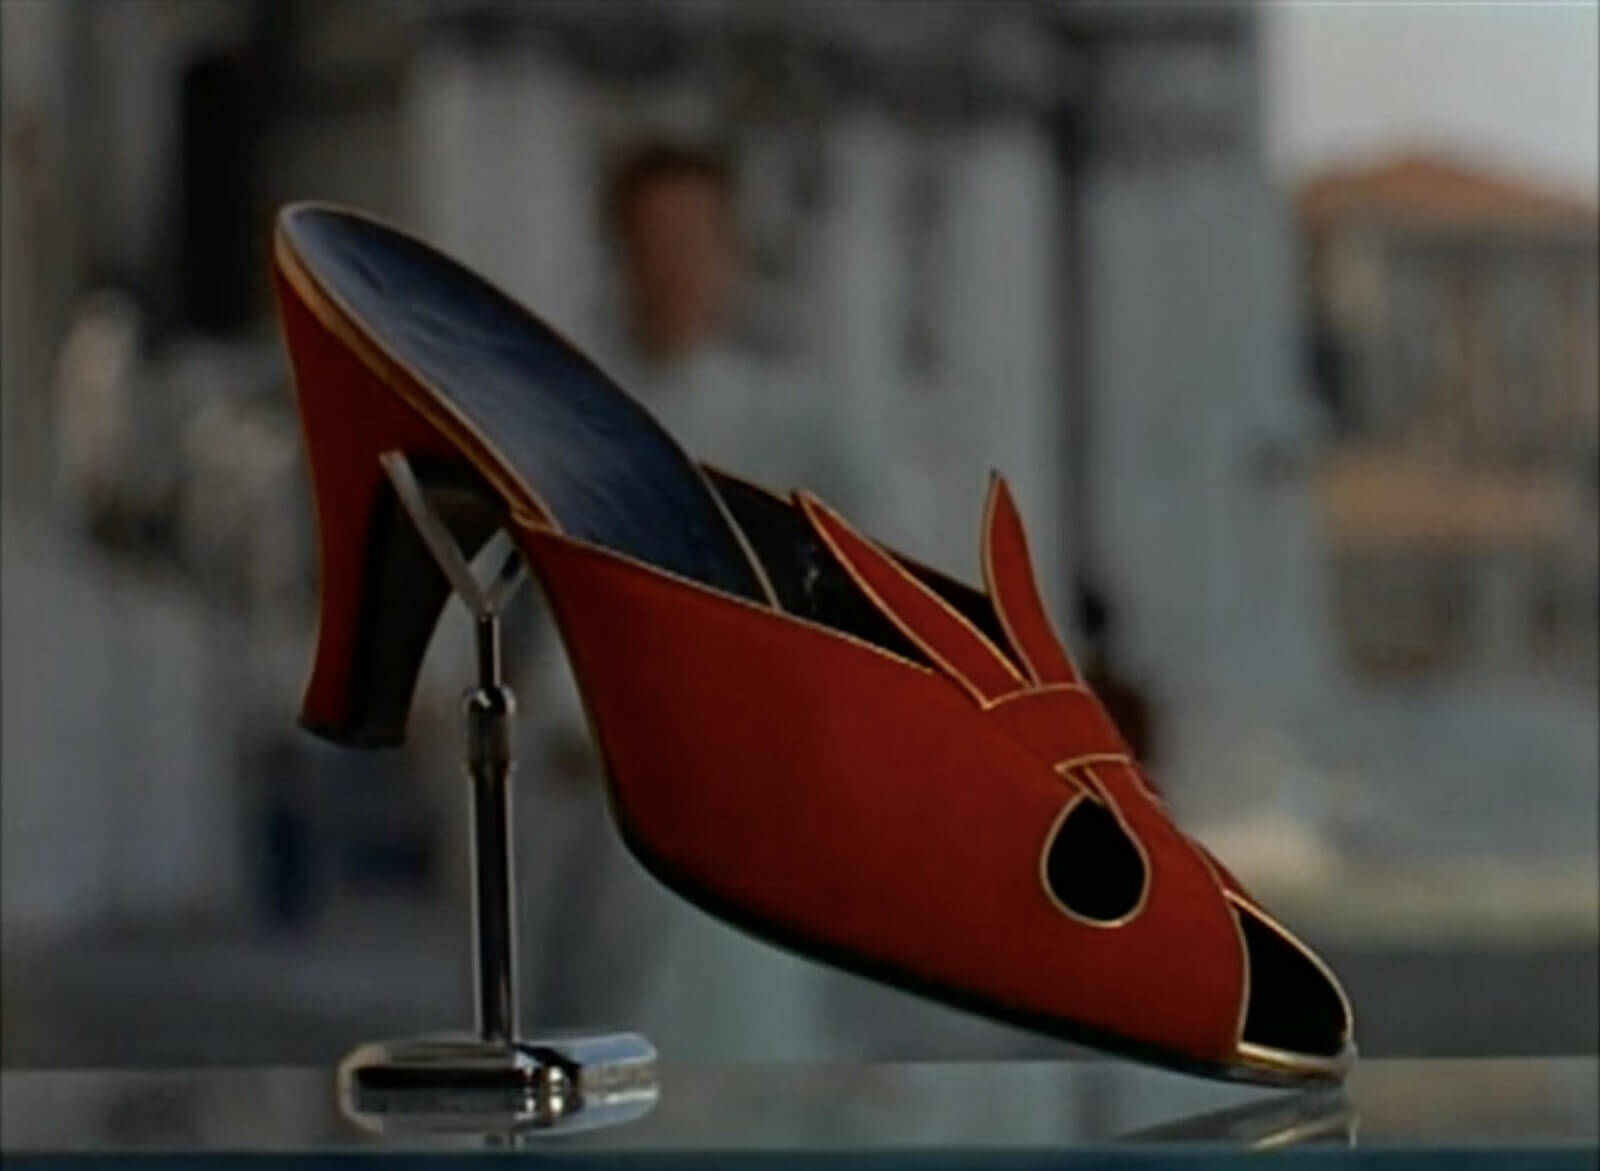 Connotation Synonym - The Red Shoes in David Lean's 'Summertime'